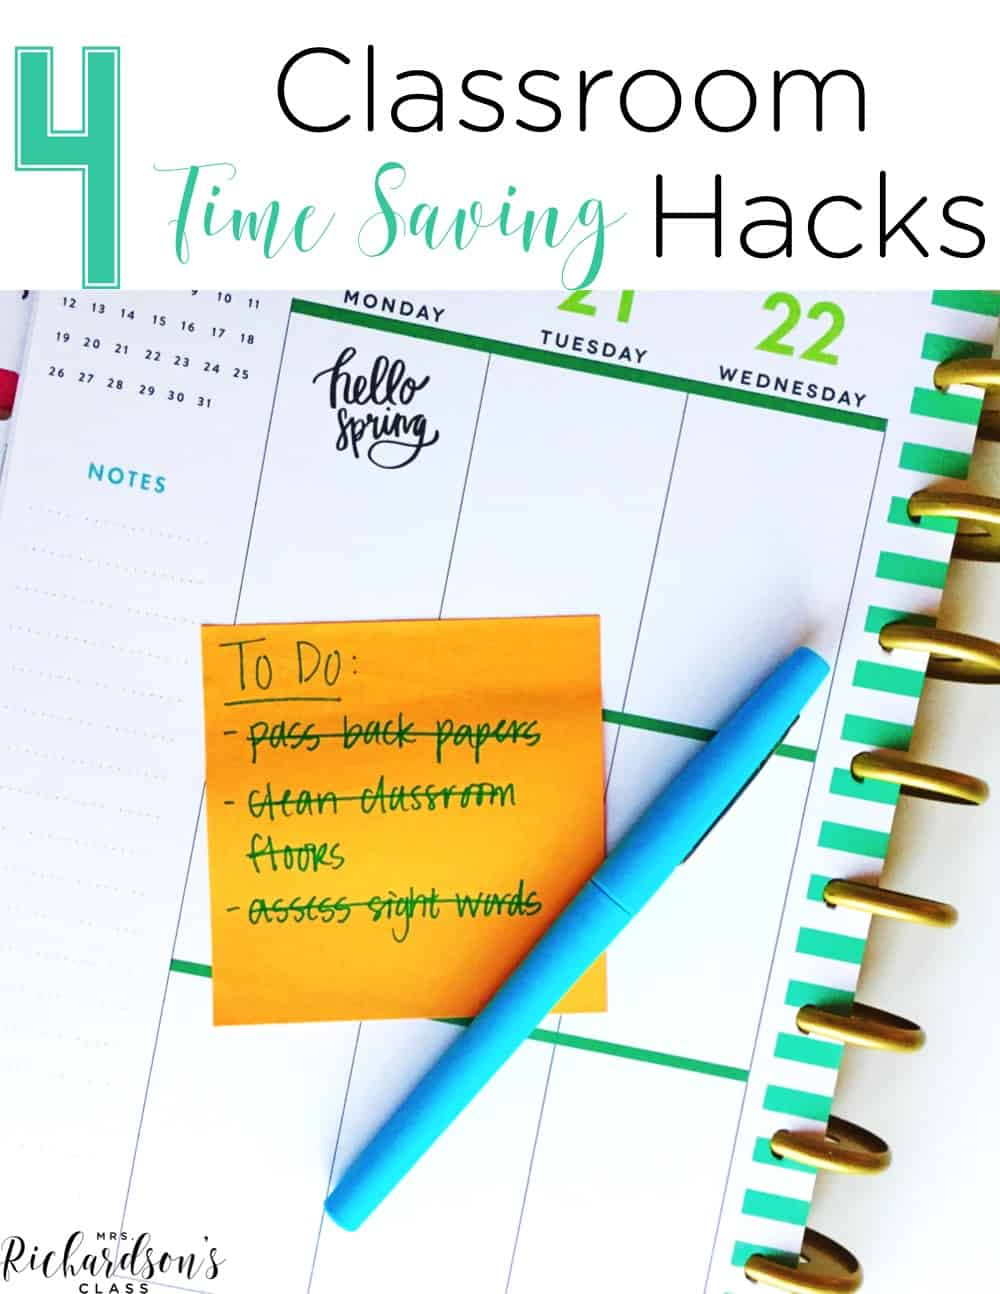 These 4 classroom time saving hacks are sure to help you keep your sanity in your classroom. From finding some extra time to practice skills, to classroom clean up, to saving your voice, you are sure to save classroom time!